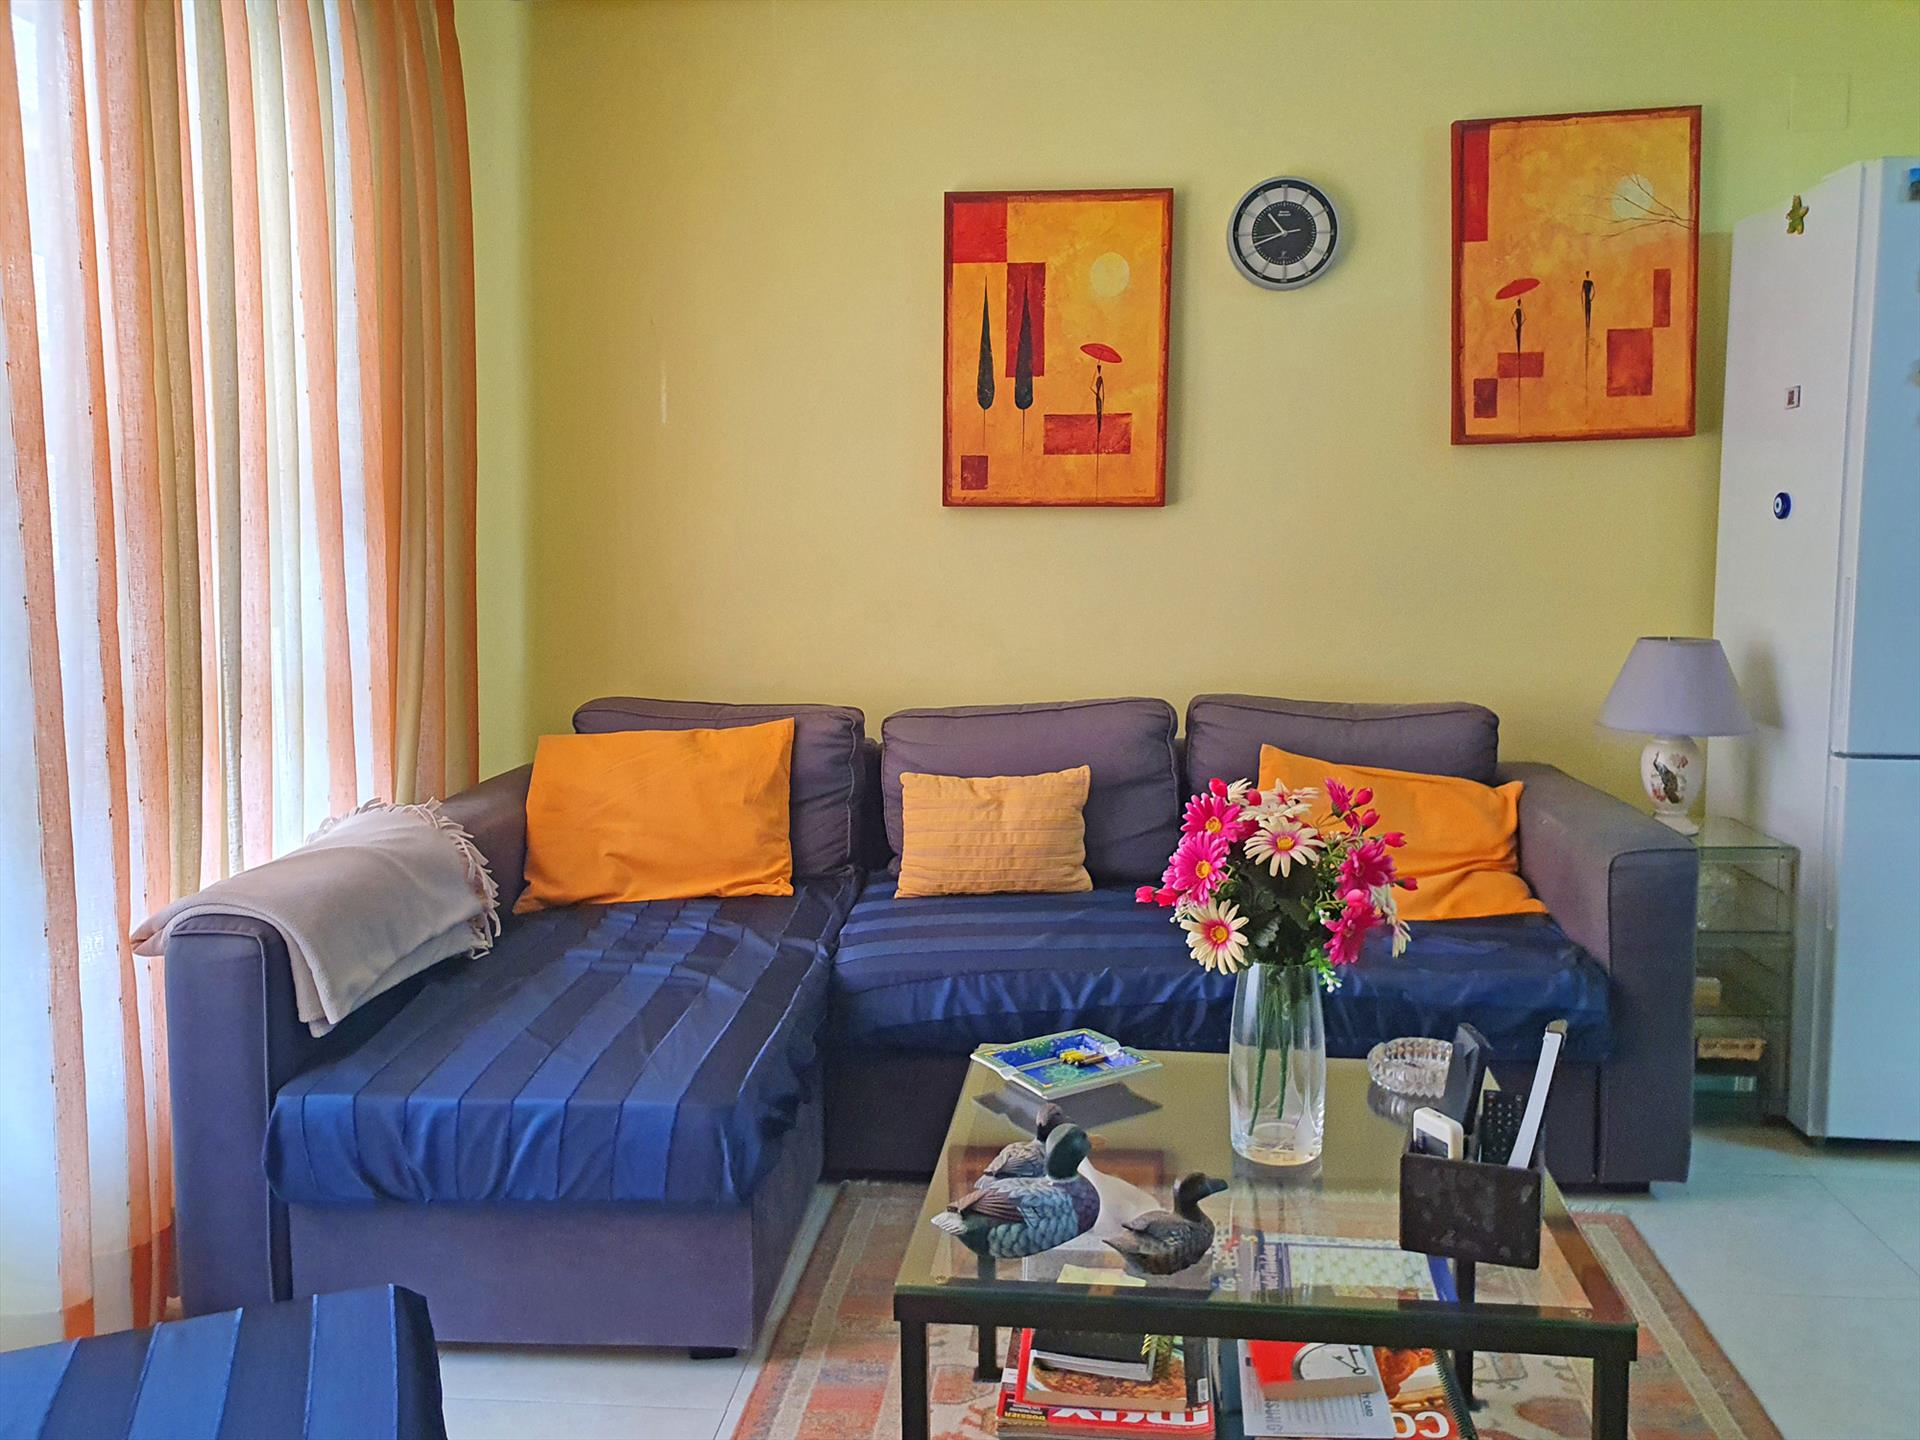 Apartamento Pueblo Javea,Comfortable apartment in the old town of Javea for 4 persons, aprox. 500 meters from the historic centre of Javea with the.....